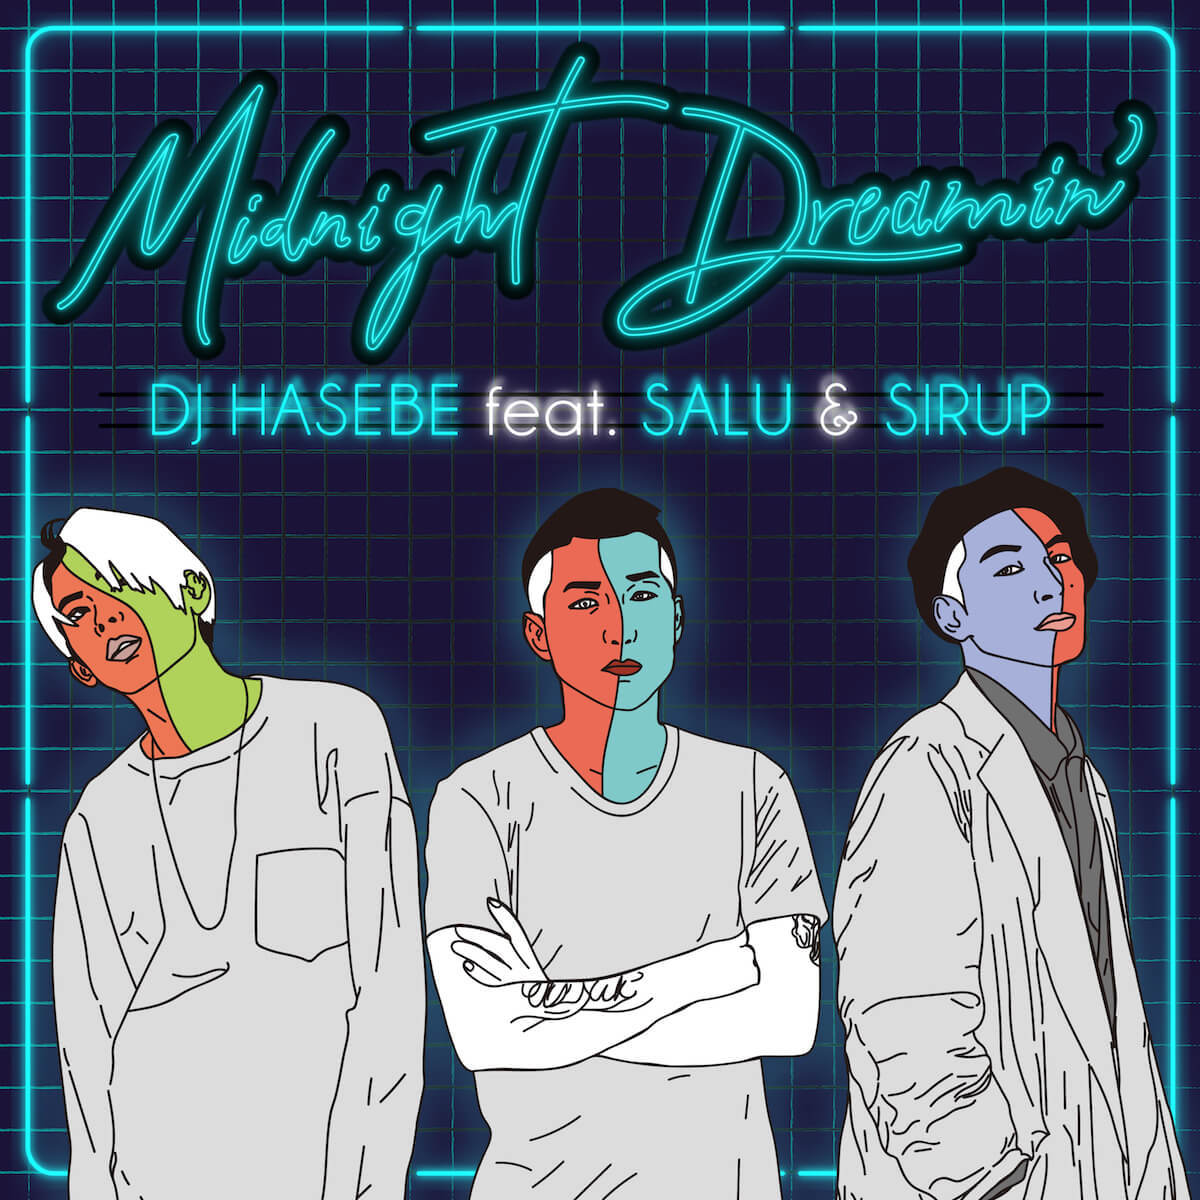 DJ HASEBE / Midnight Dreamin' feat. SALU & SIRUP